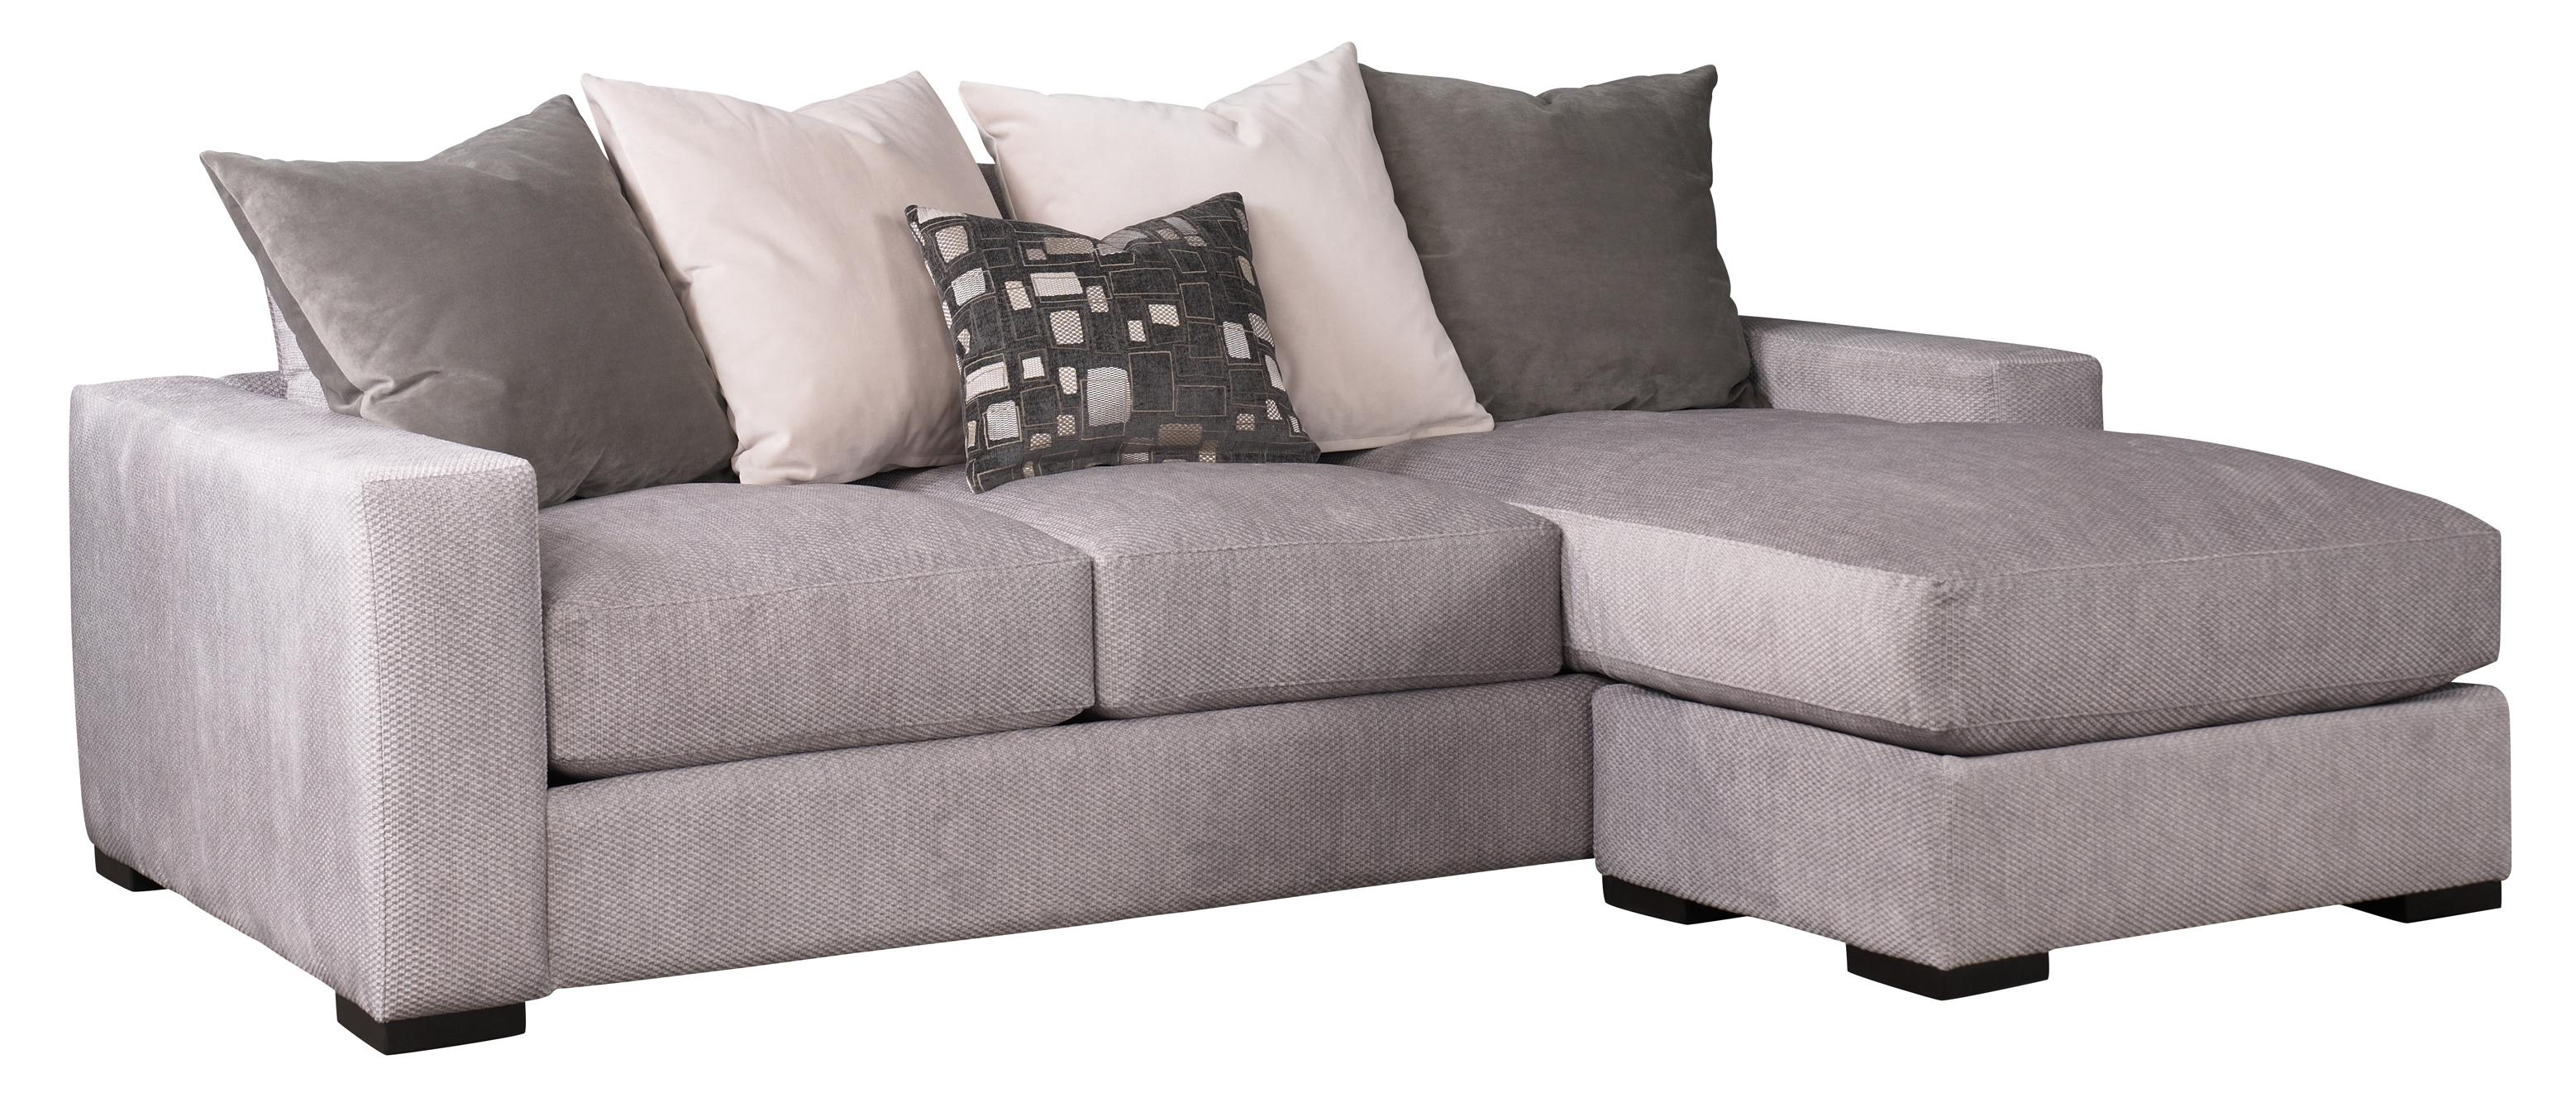 Jonathan louis lombardy 332 90a 90b contemporary sofa w for Divan vs chaise